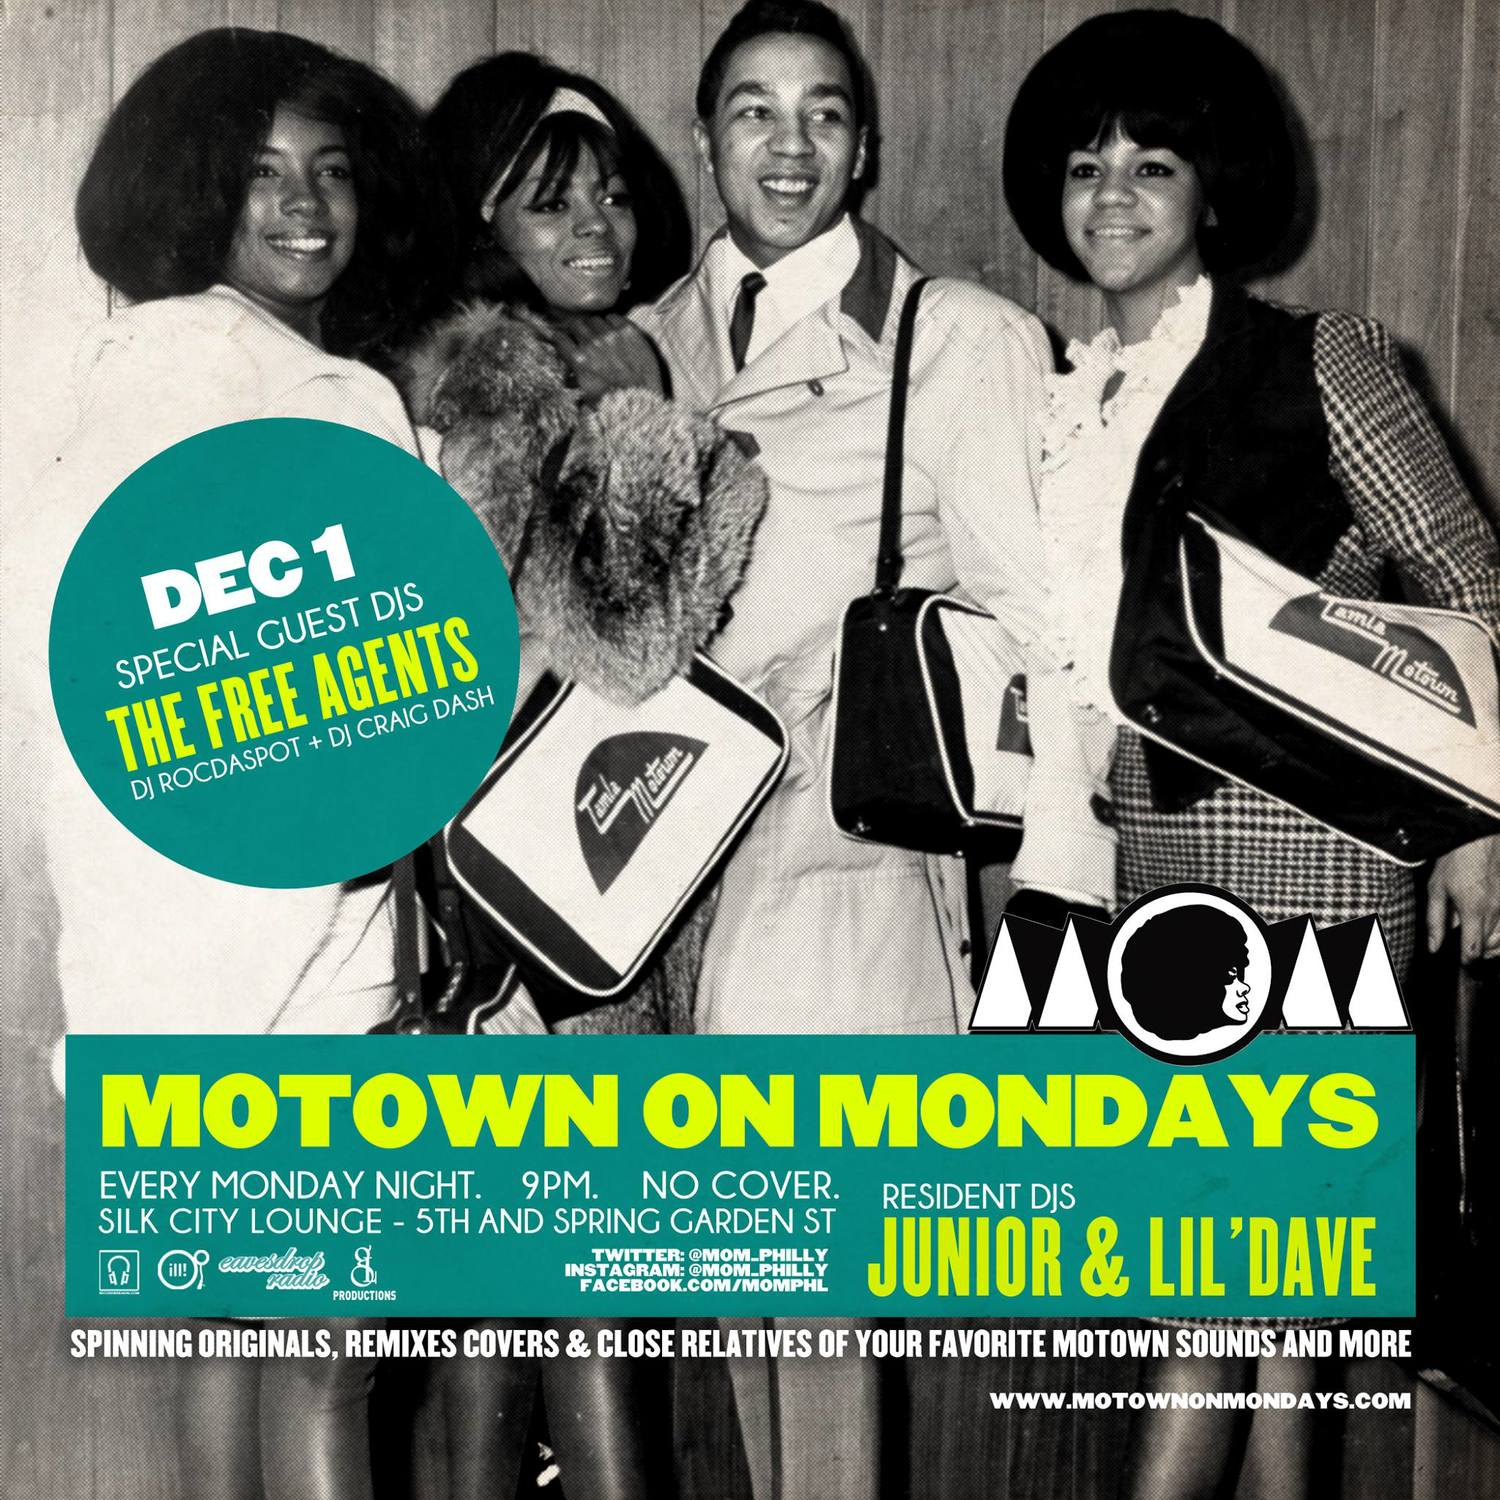 MOTOWN ON MONDAYS (MOM) w/ FREE AGENTS DJs Rocdaspot & Craig Dash